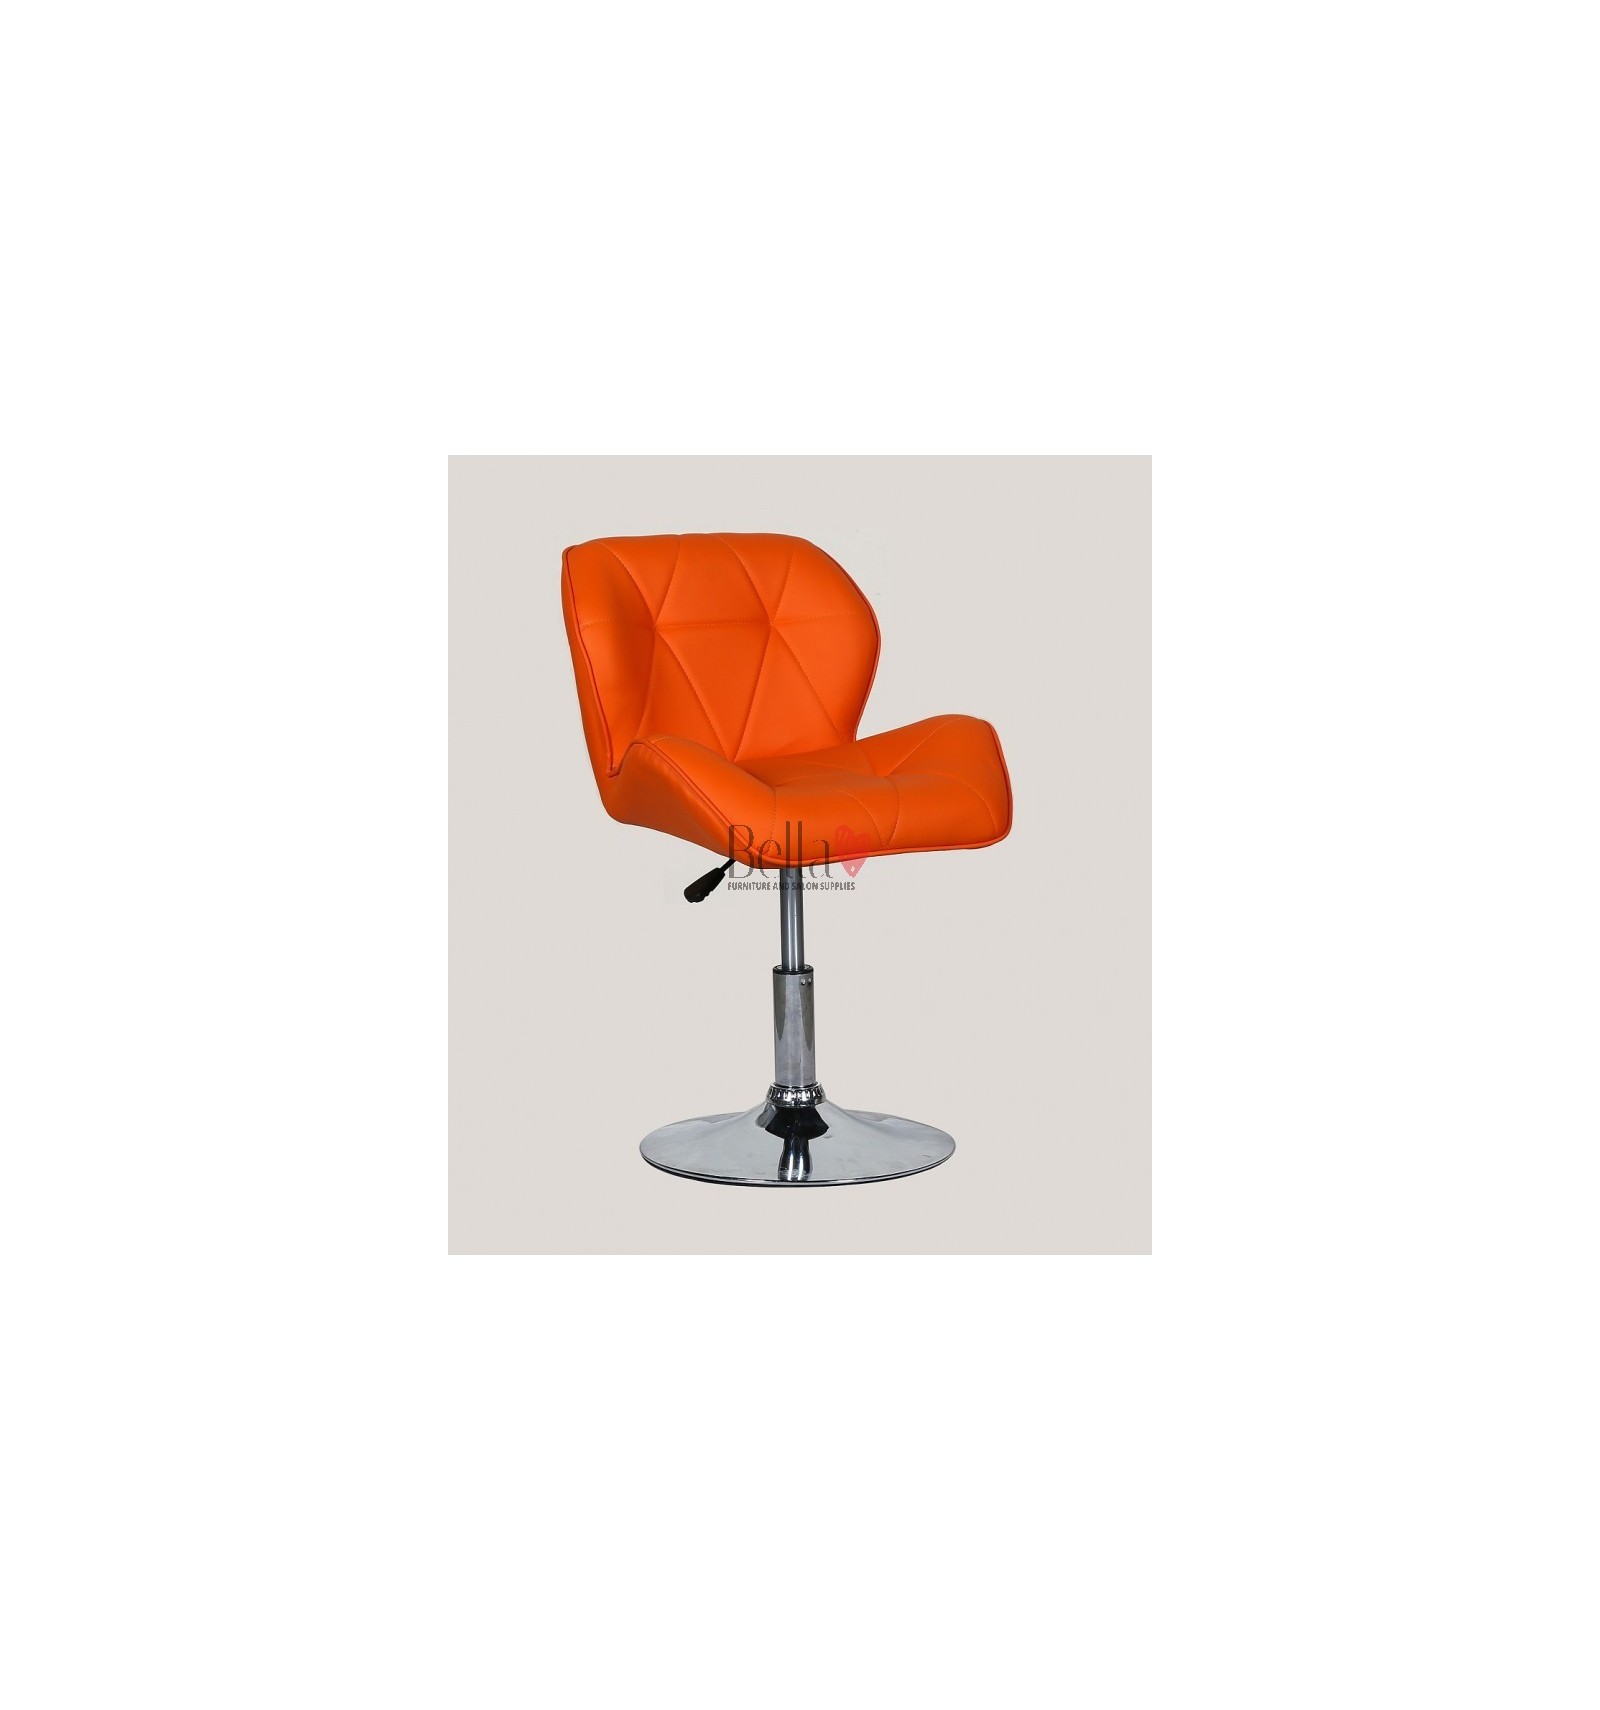 orange chair salon mesh back office with lumbar support luxury elegant and stylish chairs for beauty nail salons bfhc111n